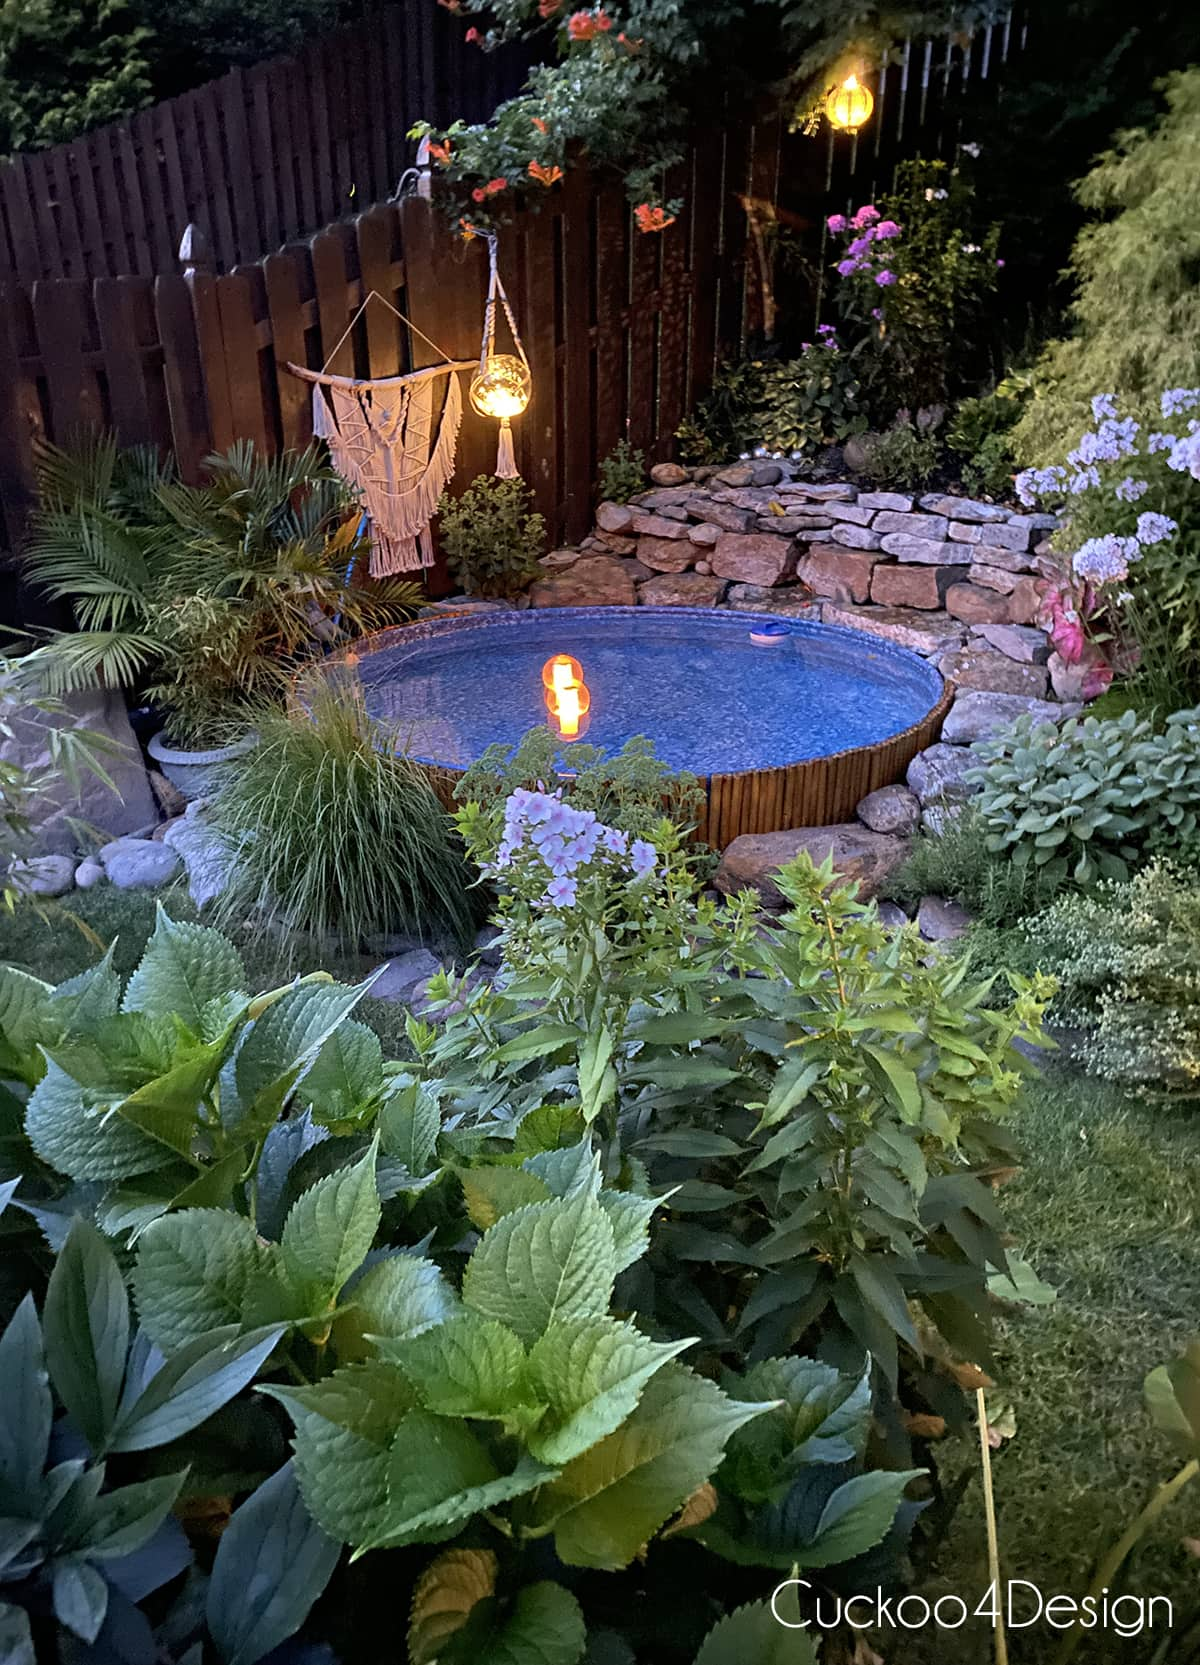 outdoor solar lights used in and around the stock tank pool